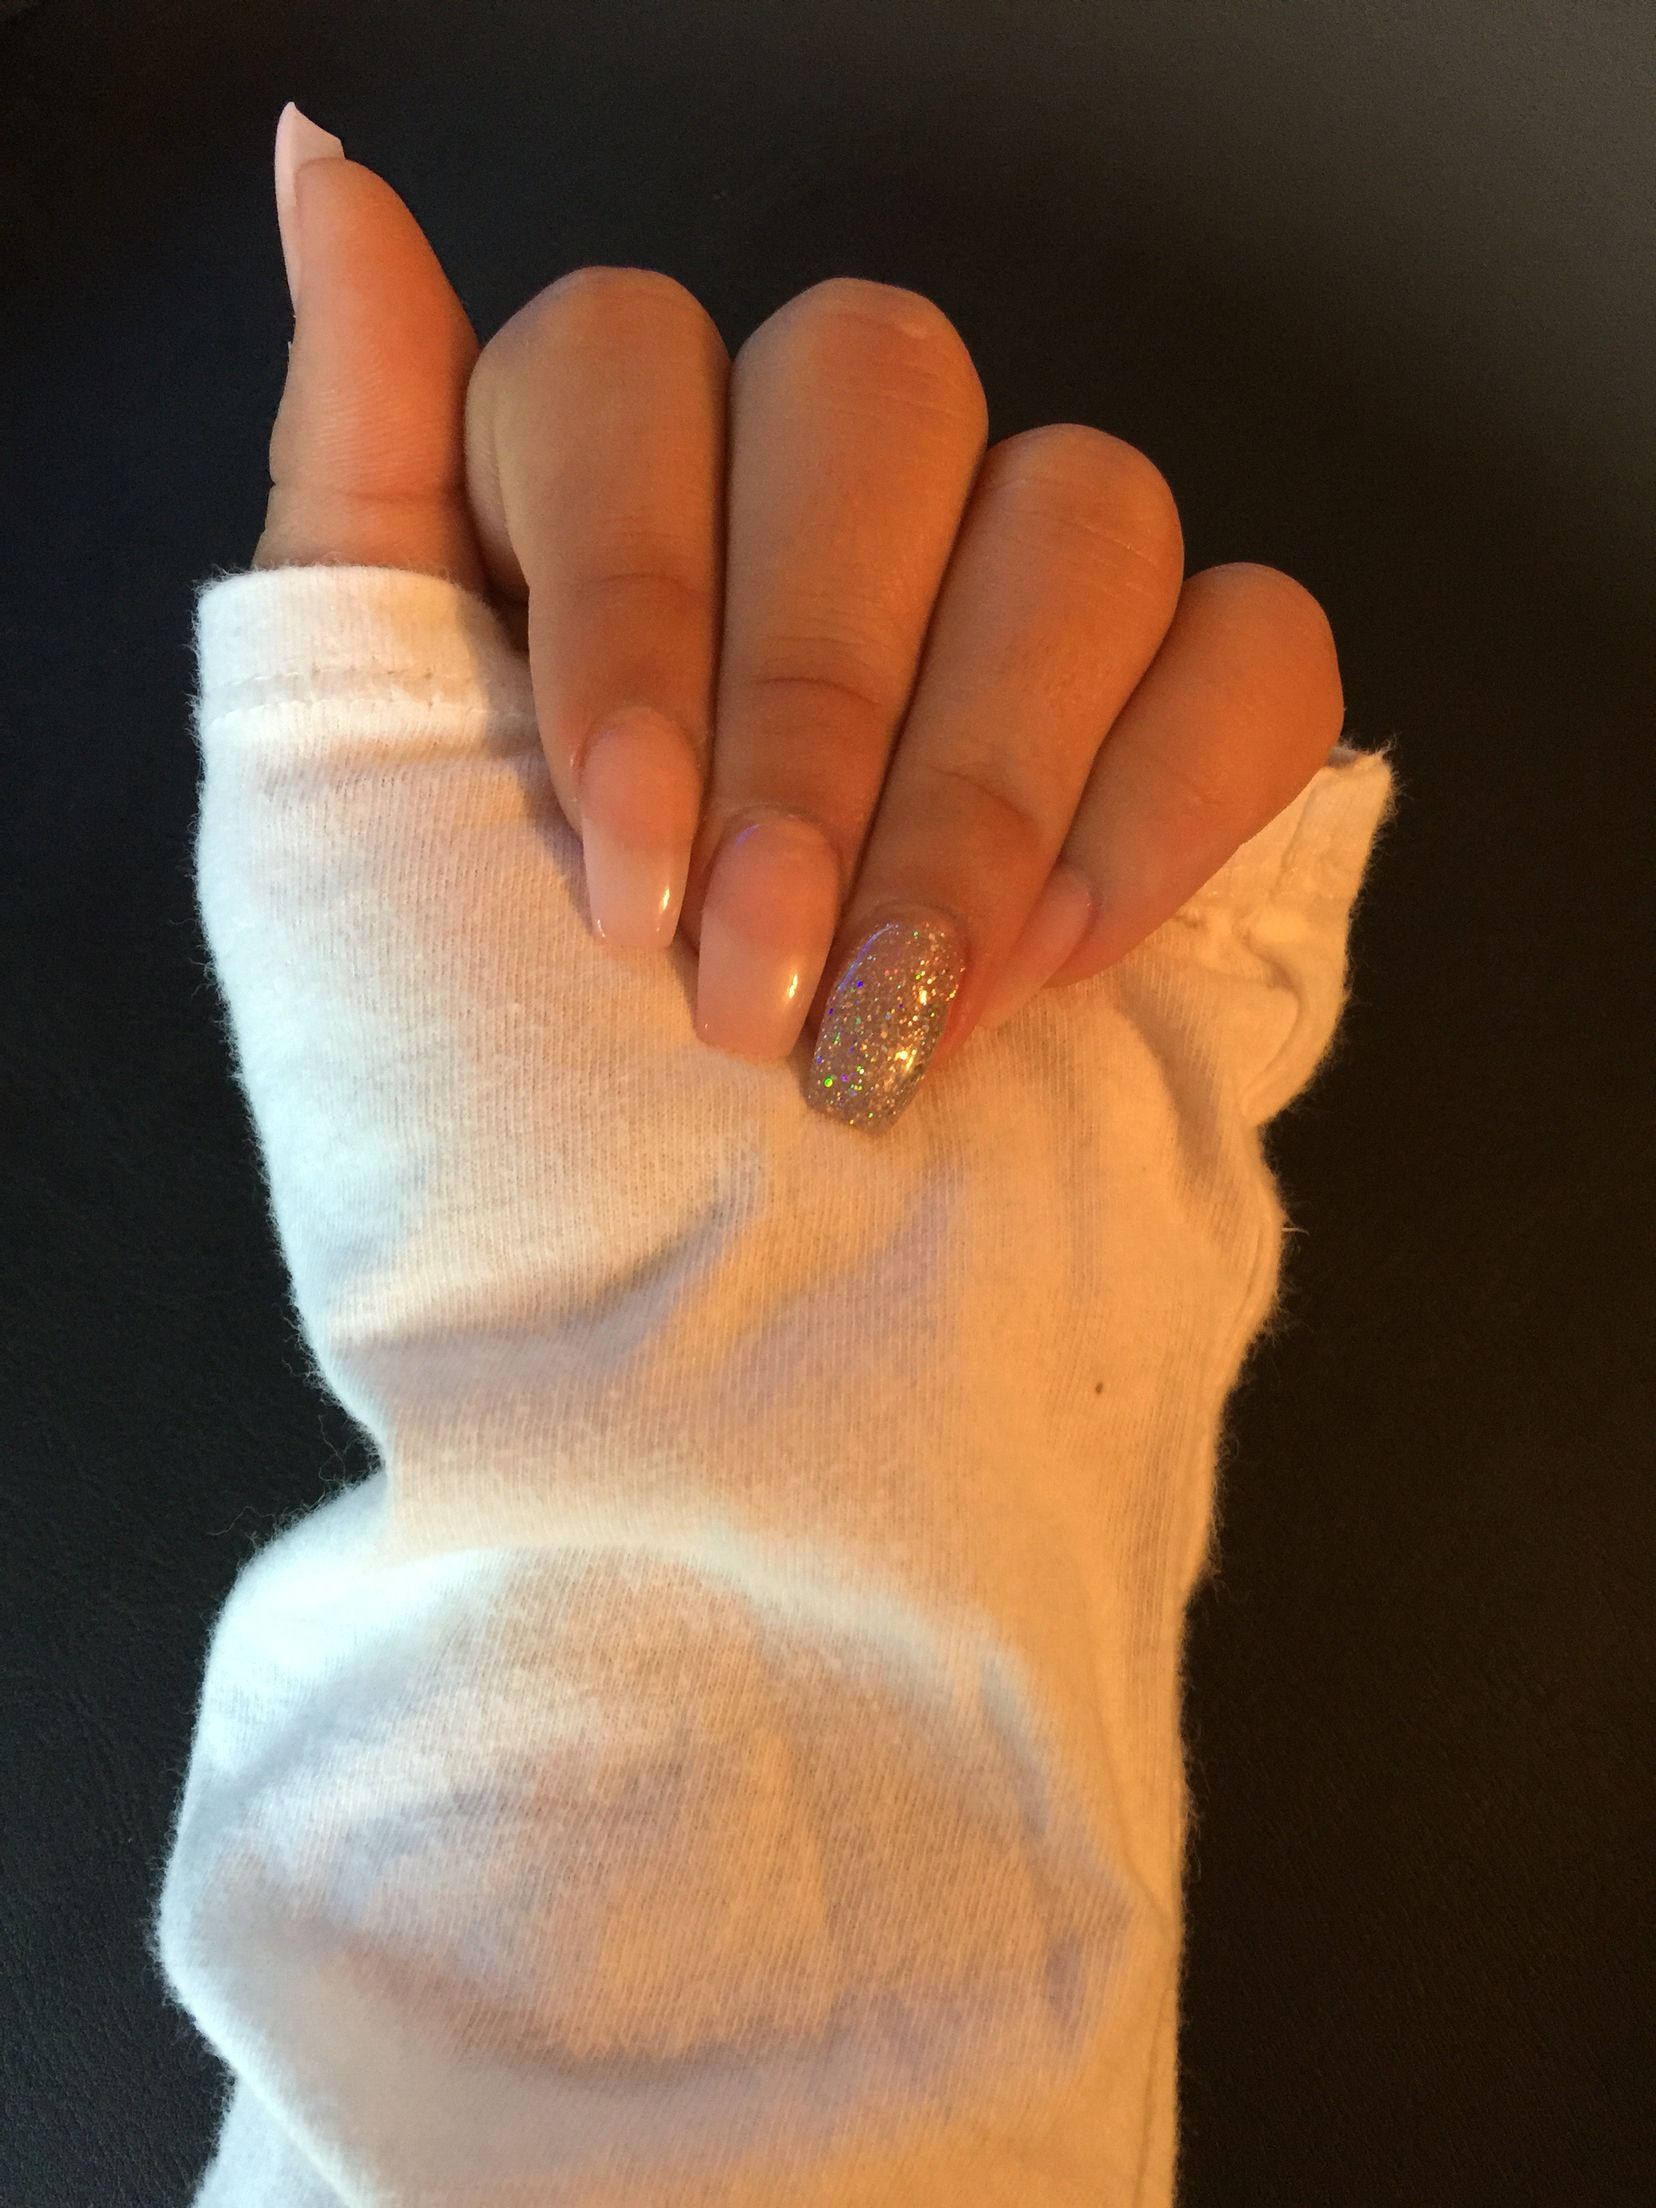 City Nails And Spa Did This Amazing Mani For Me When I Was Visiting Chicago Il It S In Streamwood Illinois With Images City Nails Nail Spa Mani